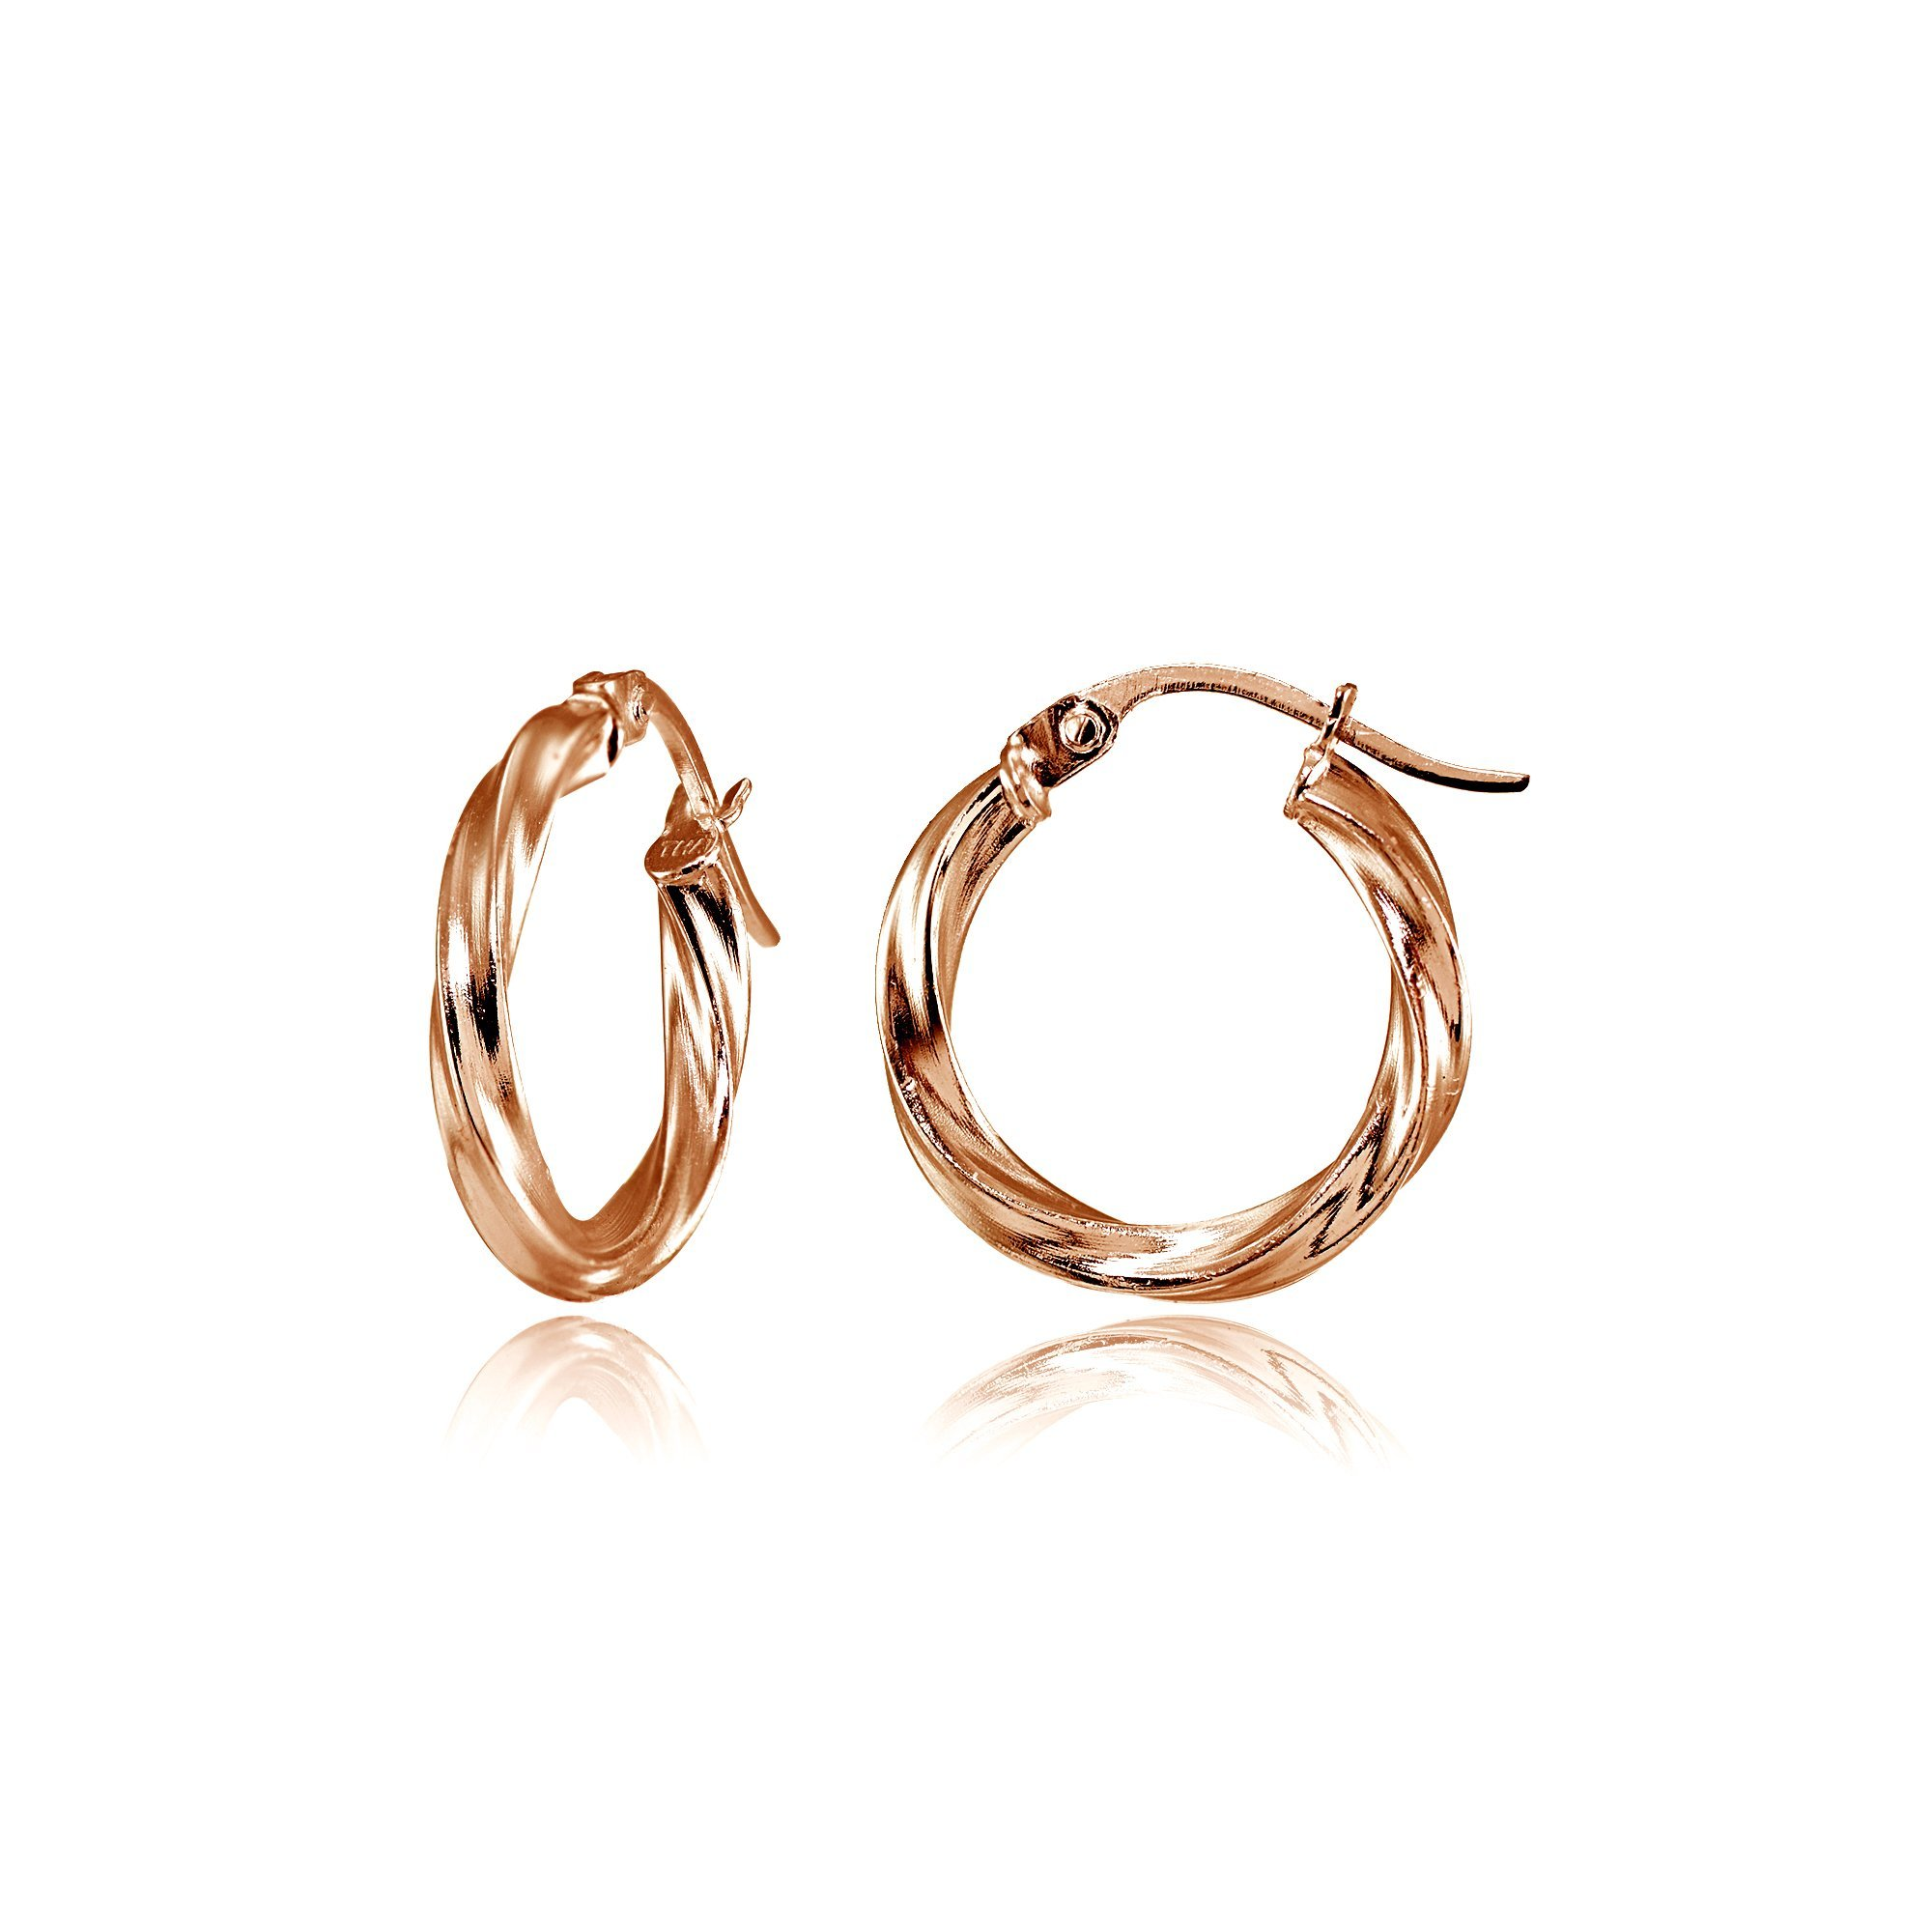 Cheap Hoops Earrings For Men find Hoops Earrings For Men deals on